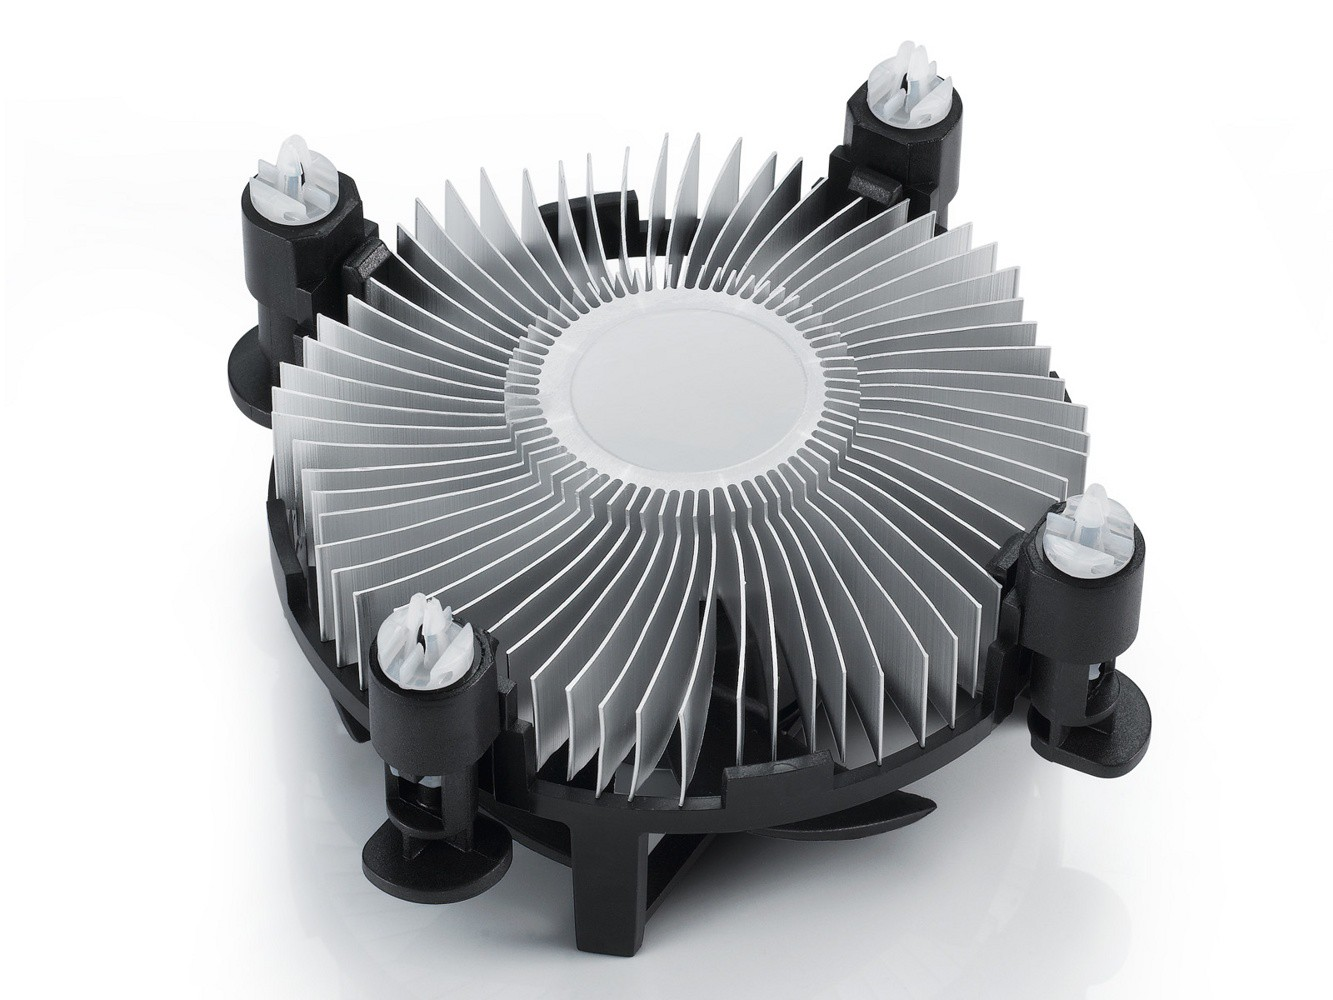 Вентилятор Deepcool CK-11509 (2200rpm, 26.8dB, 38.62 CFM, 3pin, 65W) (Socket 775/1150/1151)